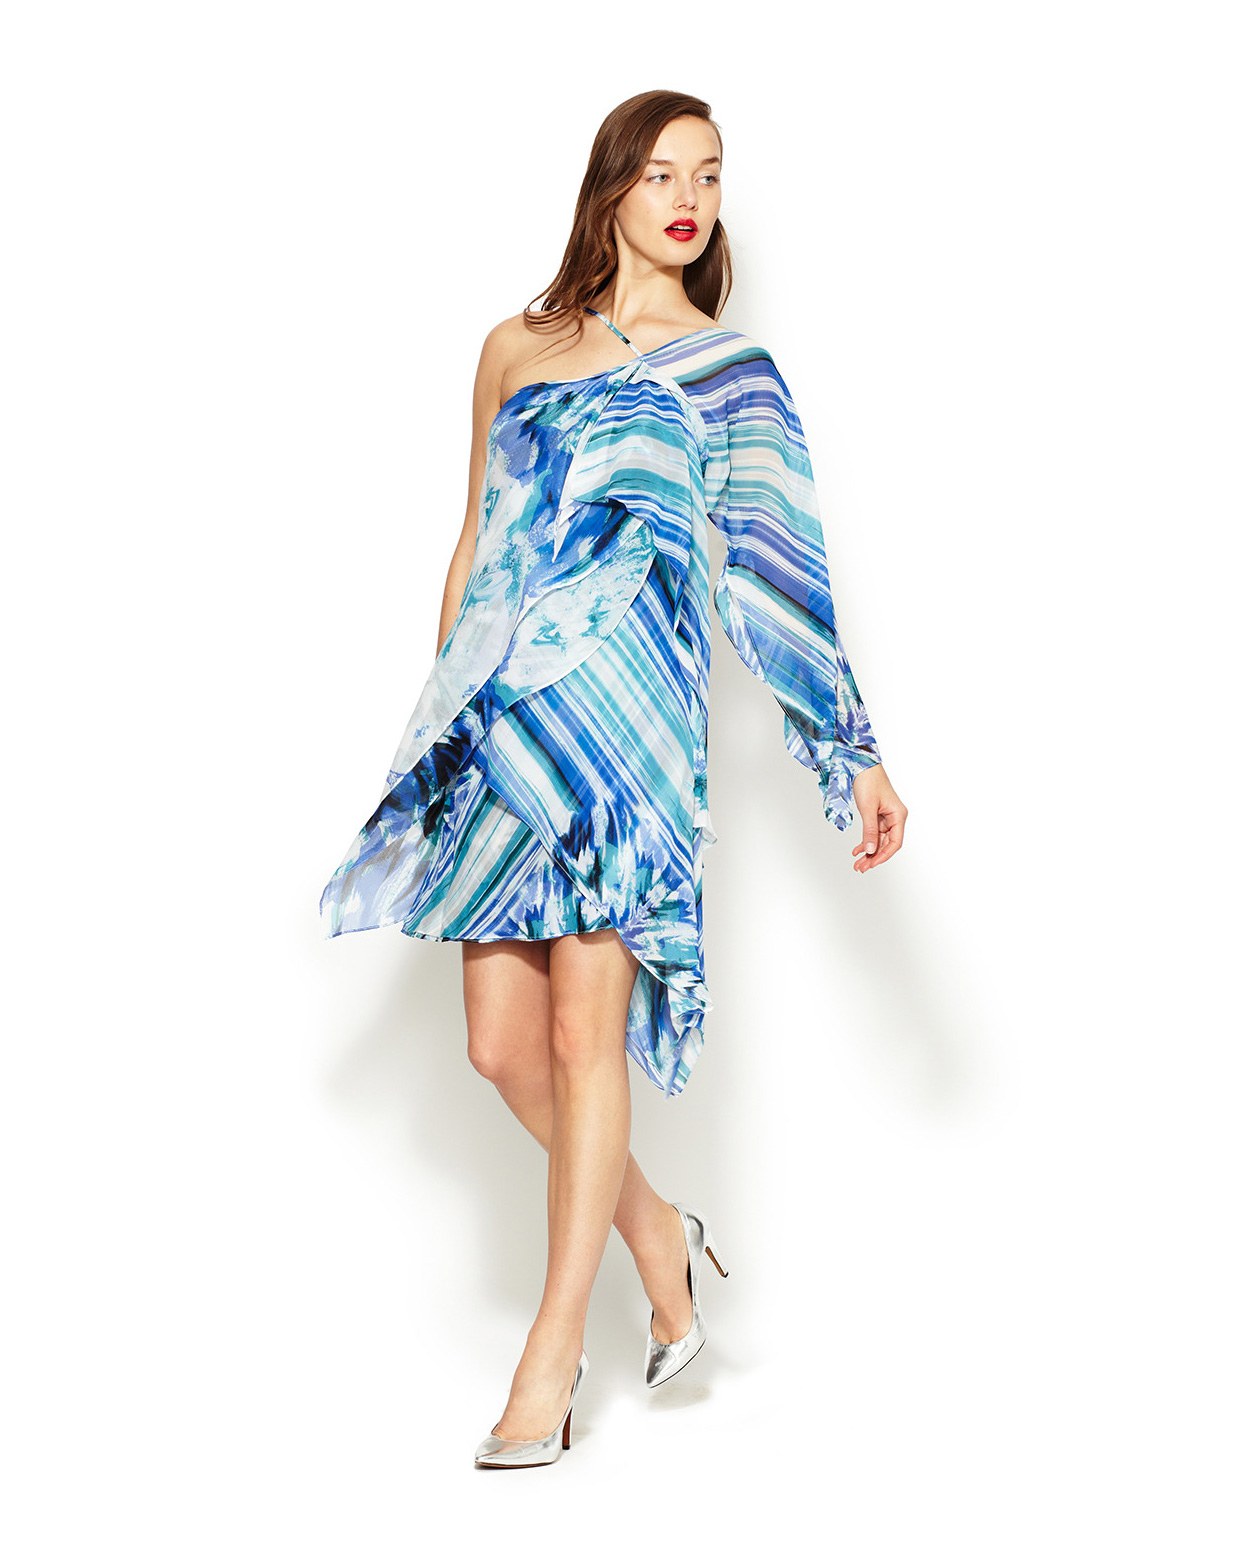 Assymetrical Watercolor Crepe Dress - fEROSh